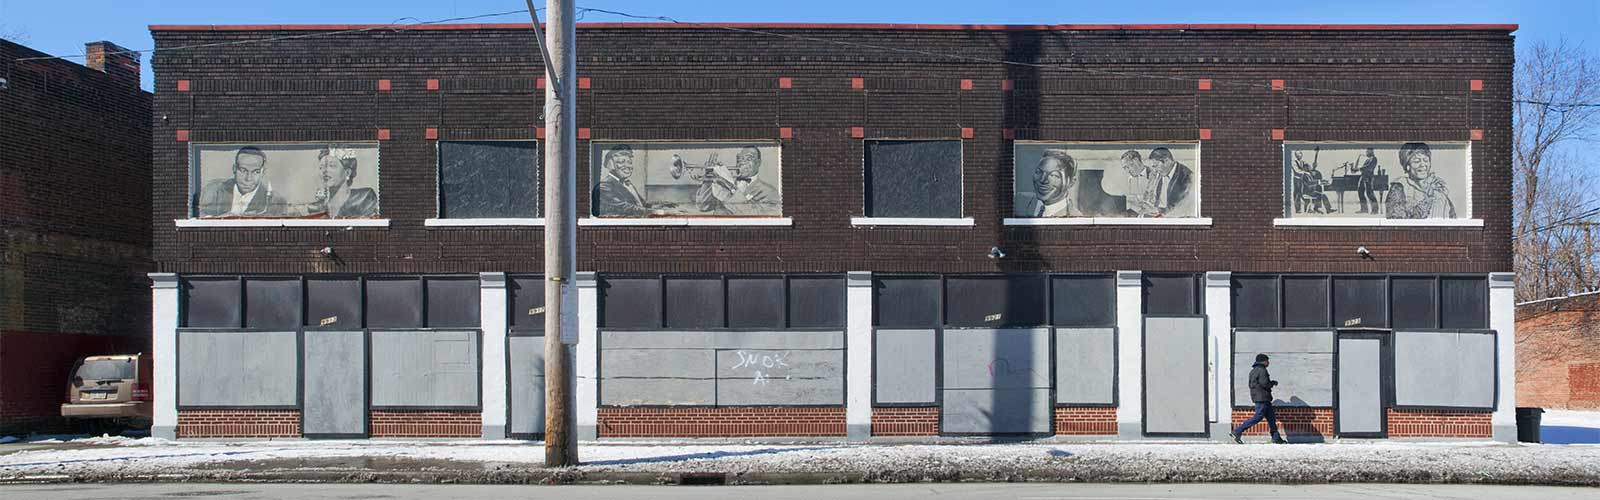 Jazz Greats murals on St. Clair, East Cleveland <span class='image-credits'>Bob Perkoski</span>